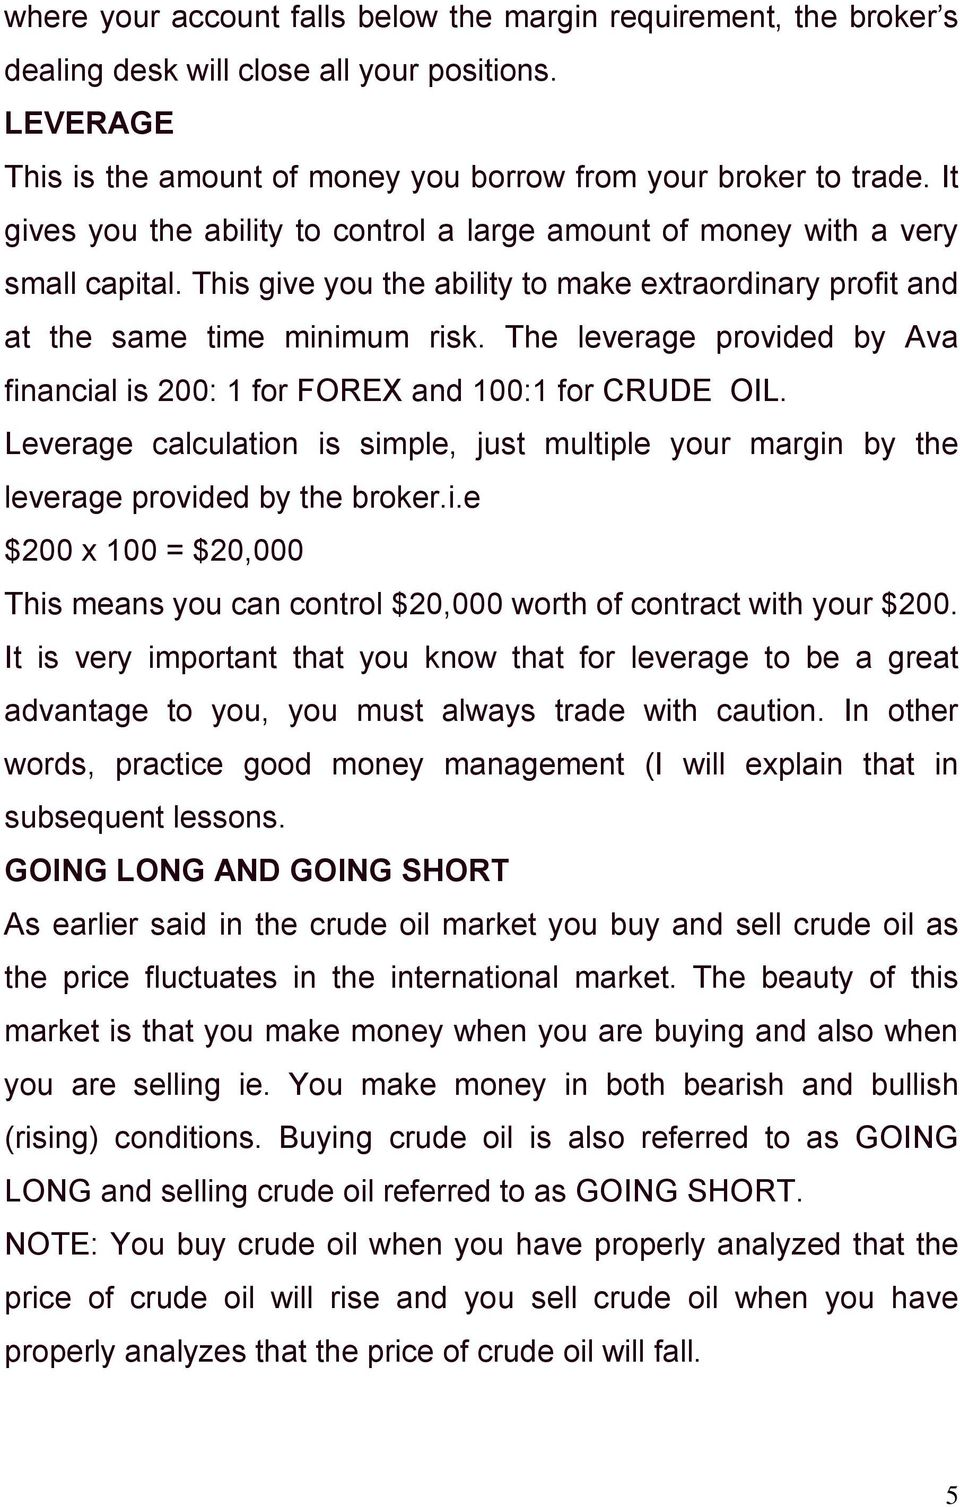 The leverage provided by Ava financial is 200: 1 for FOREX and 100:1 for CRUDE OIL. Leverage calculation is simple, just multiple your margin by the leverage provided by the broker.i.e $200 x 100 = $20,000 This means you can control $20,000 worth of contract with your $200.